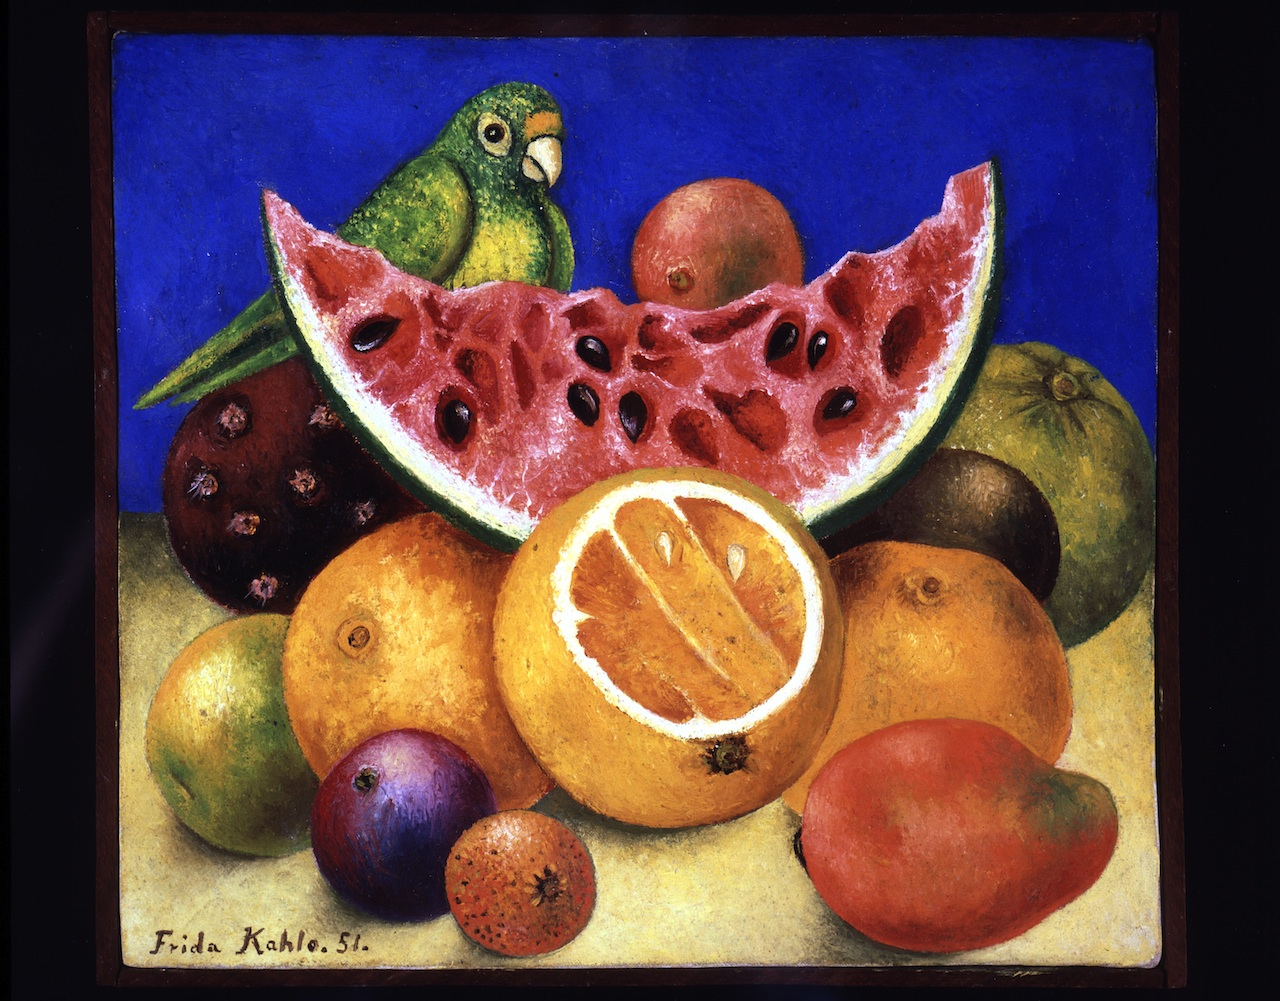 Frida Kahlo,Still Life with Parrot and Fruit,1951Harry Ransom Center, The University of Texas at Austin© 2014 Banco de México Diego Rivera Frida Kahlo Museums Trust, Mexico,D.F. / Artists Rights Society (ARS), New